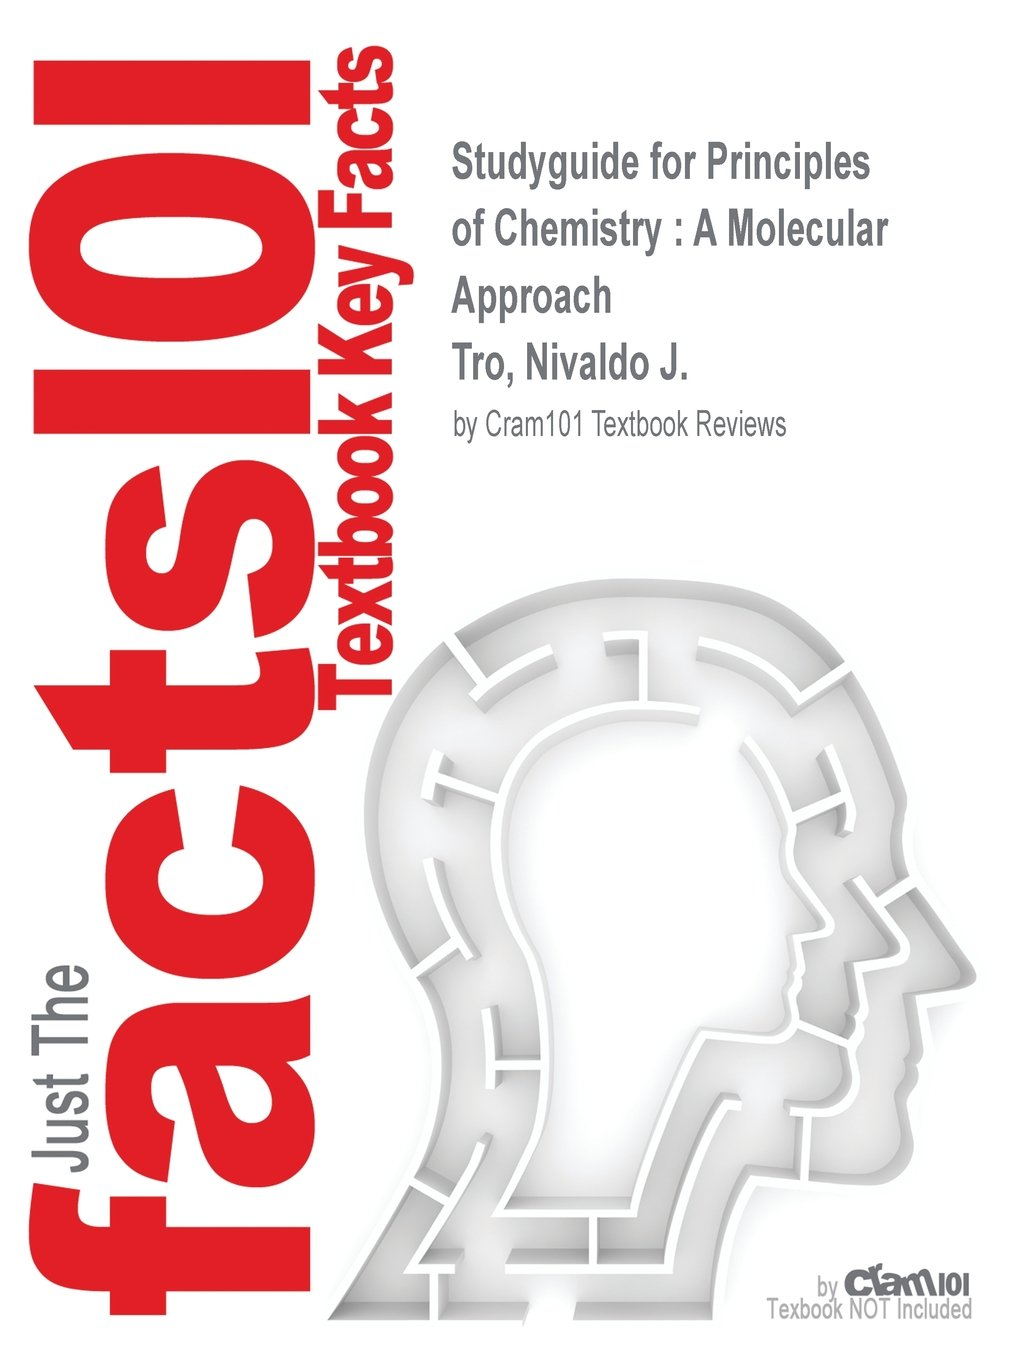 Download Studyguide for Principles of Chemistry: A Molecular Approach by Tro, Nivaldo J, ISBN 9780133889383 PDF